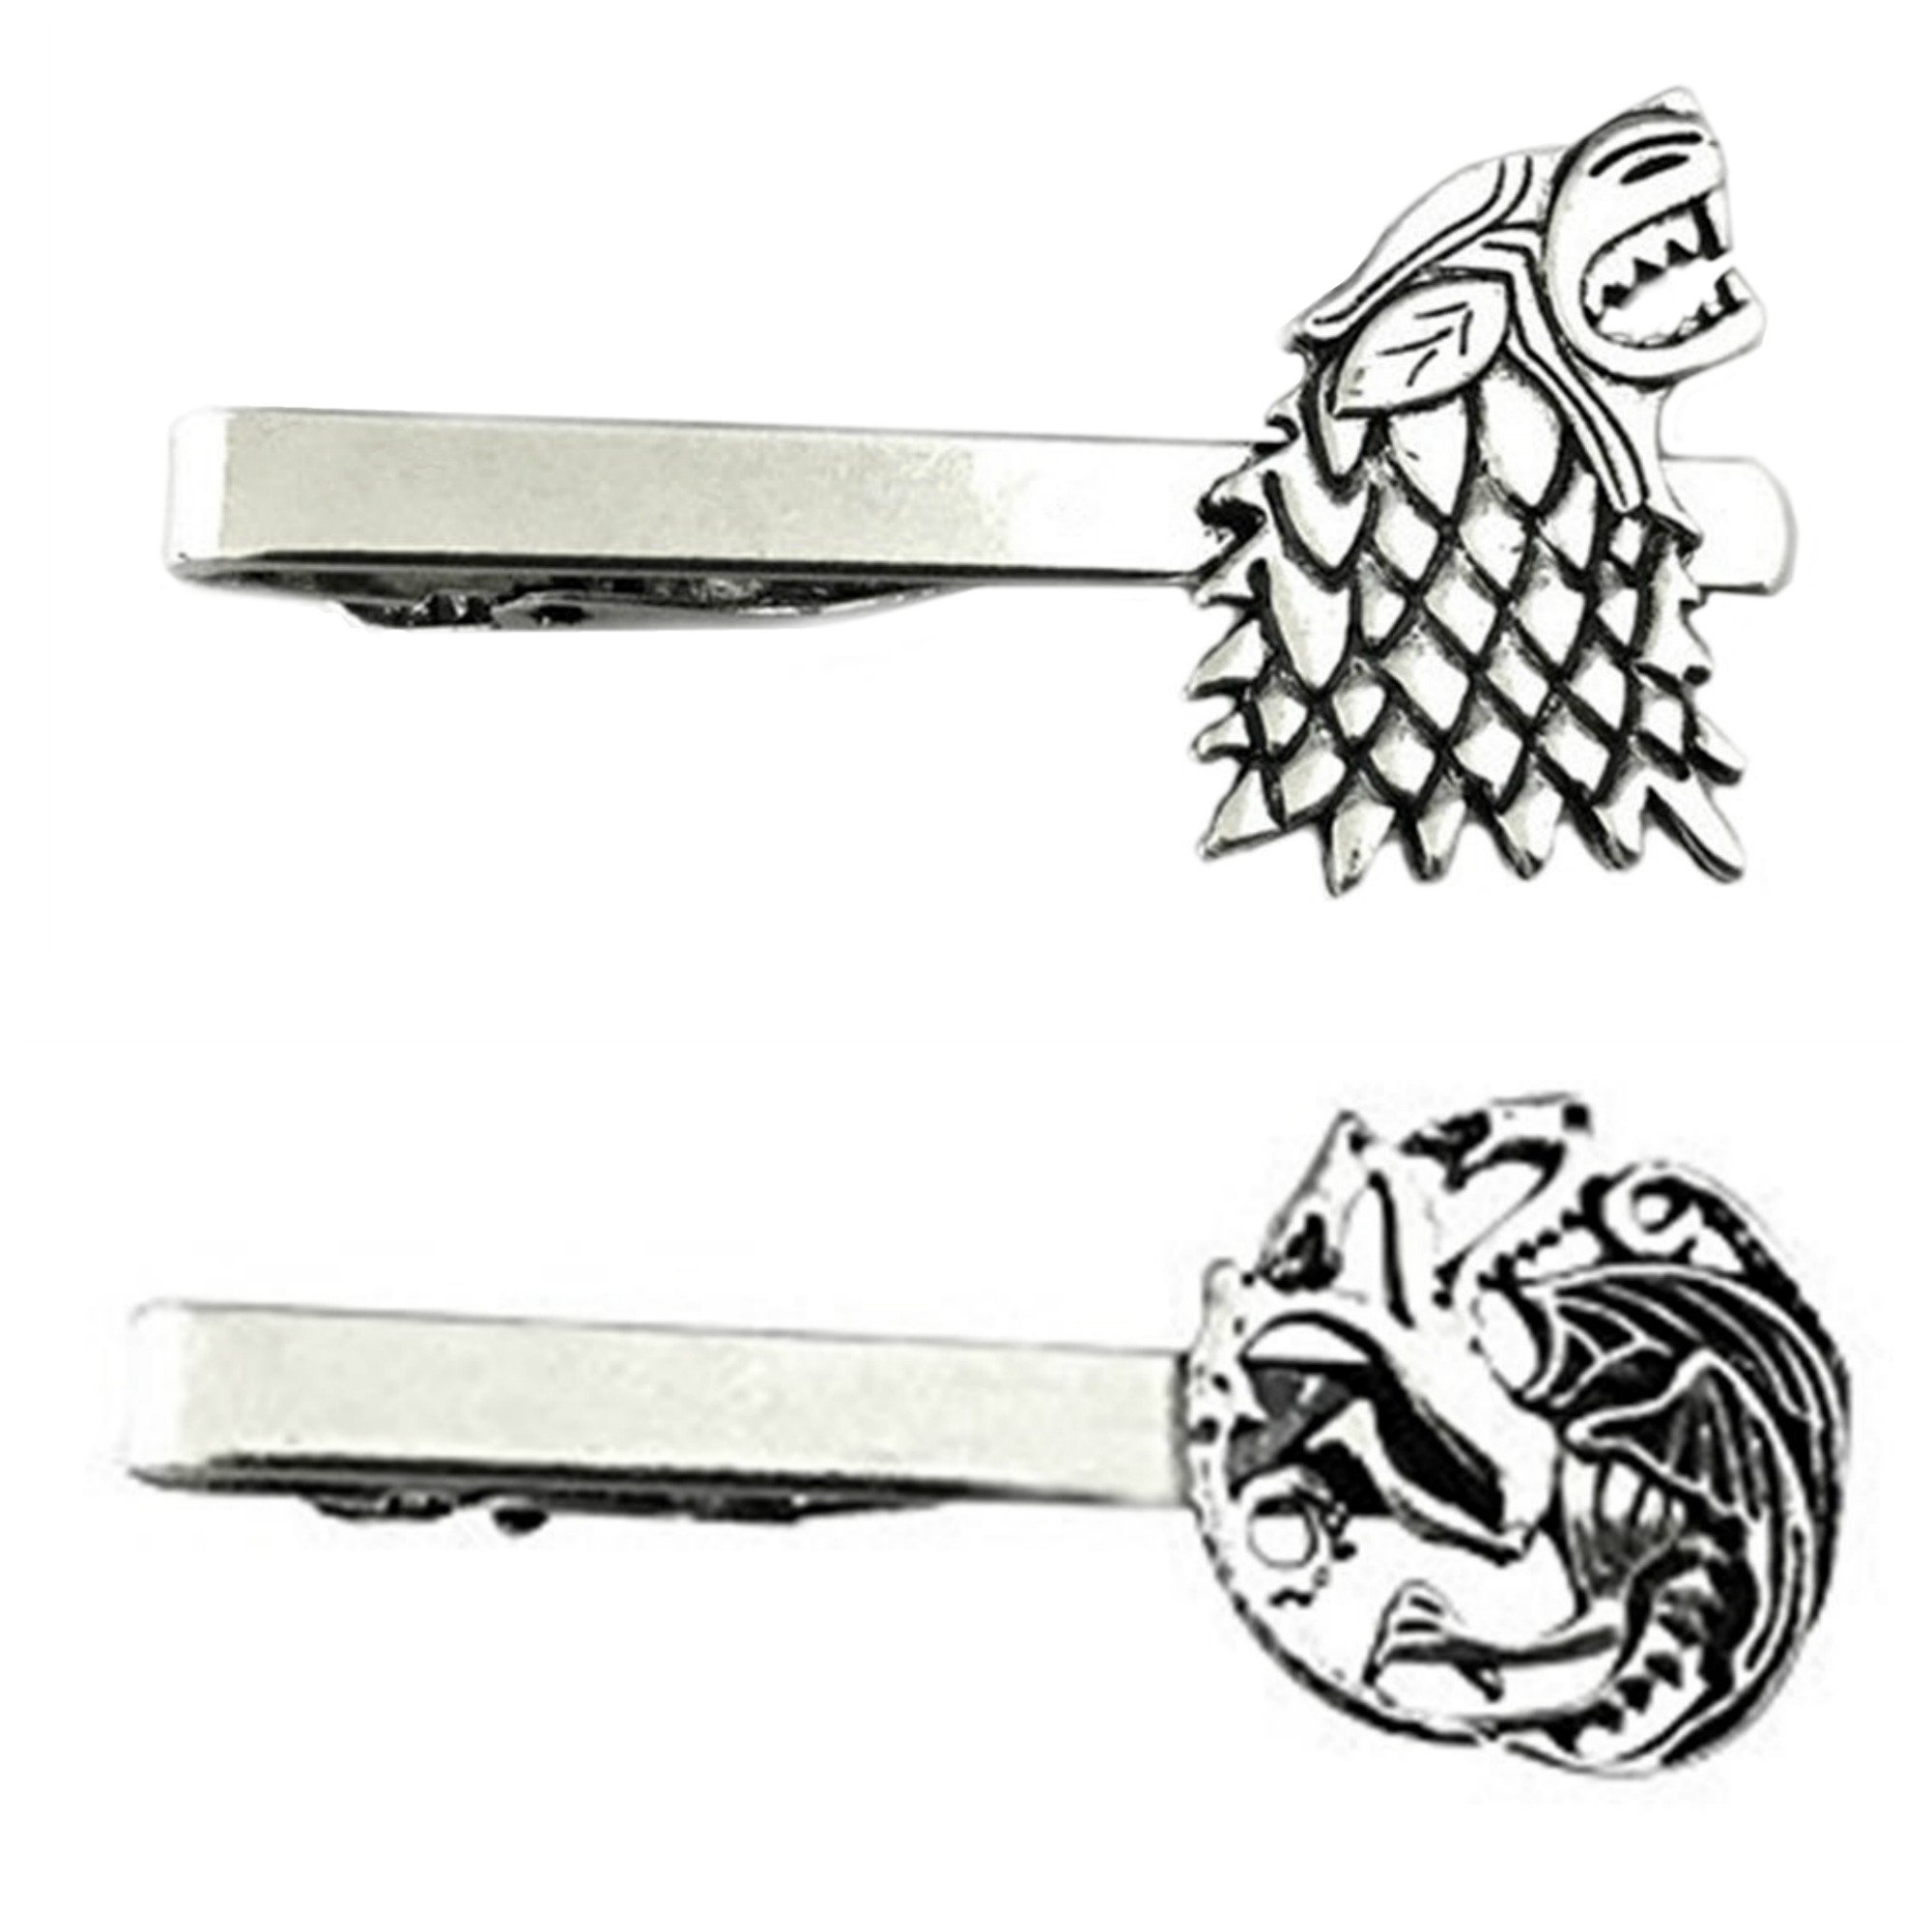 Outlander Game of Thrones - House Stark & House Targaryen - Tiebar Tie Clasp Set of 2 Wedding Superhero Logo w/Gift Box